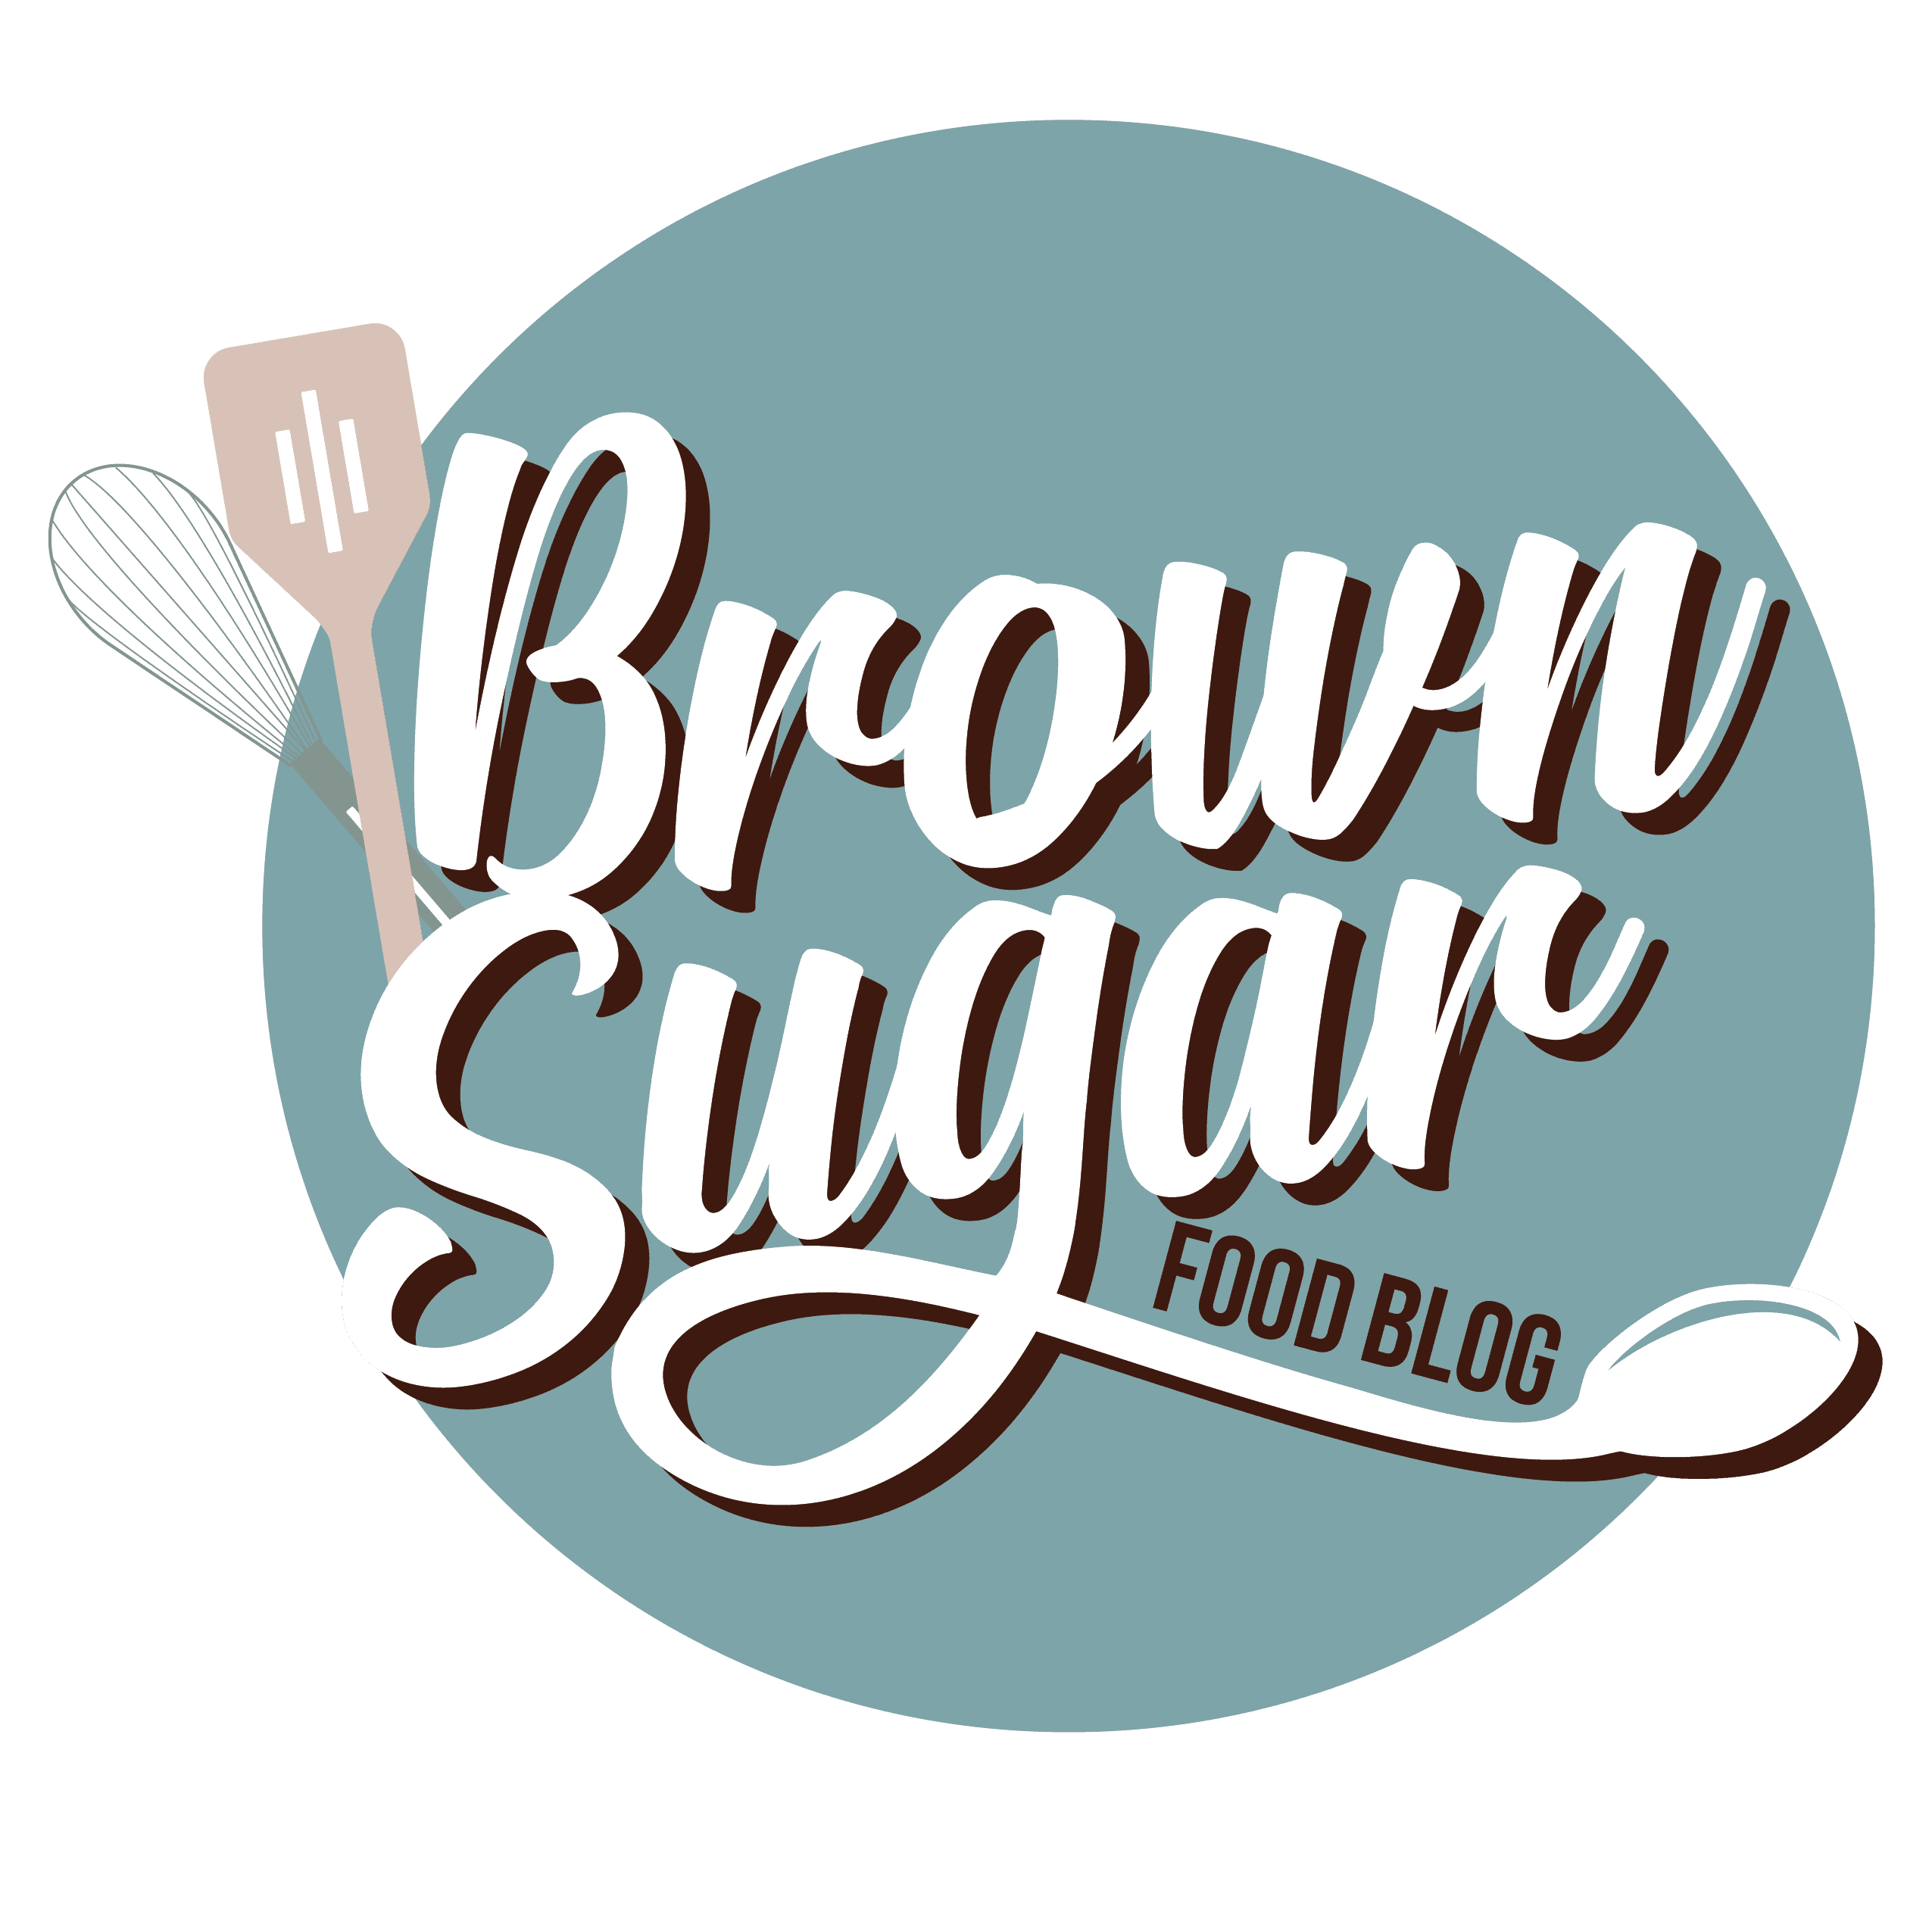 Brown Sugar Food Blog